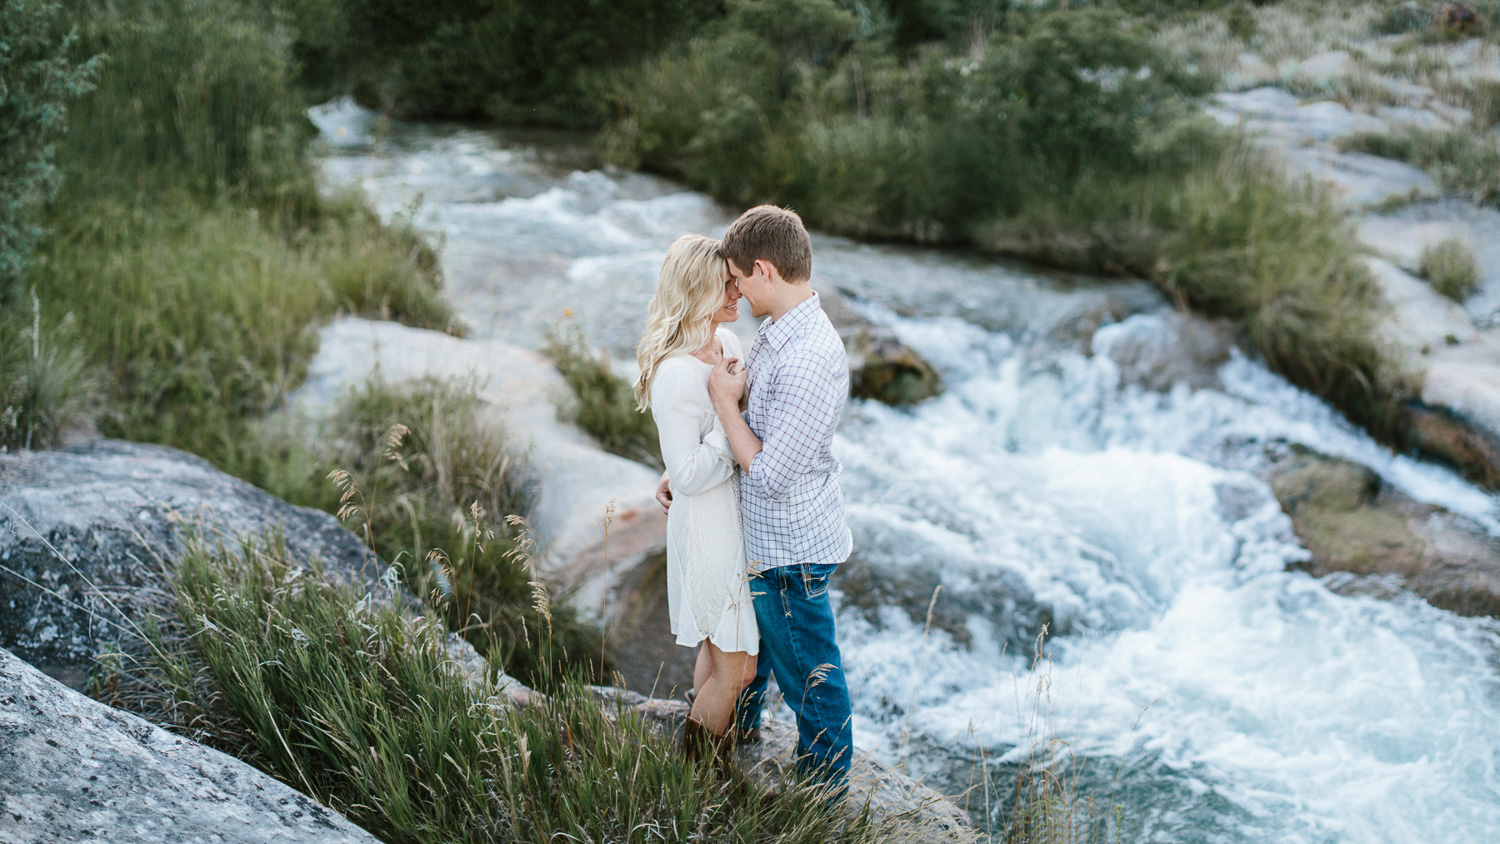 SiouxFalls_BlackHills_Adventure_Engagement_Wedding_Photographer_31.jpg